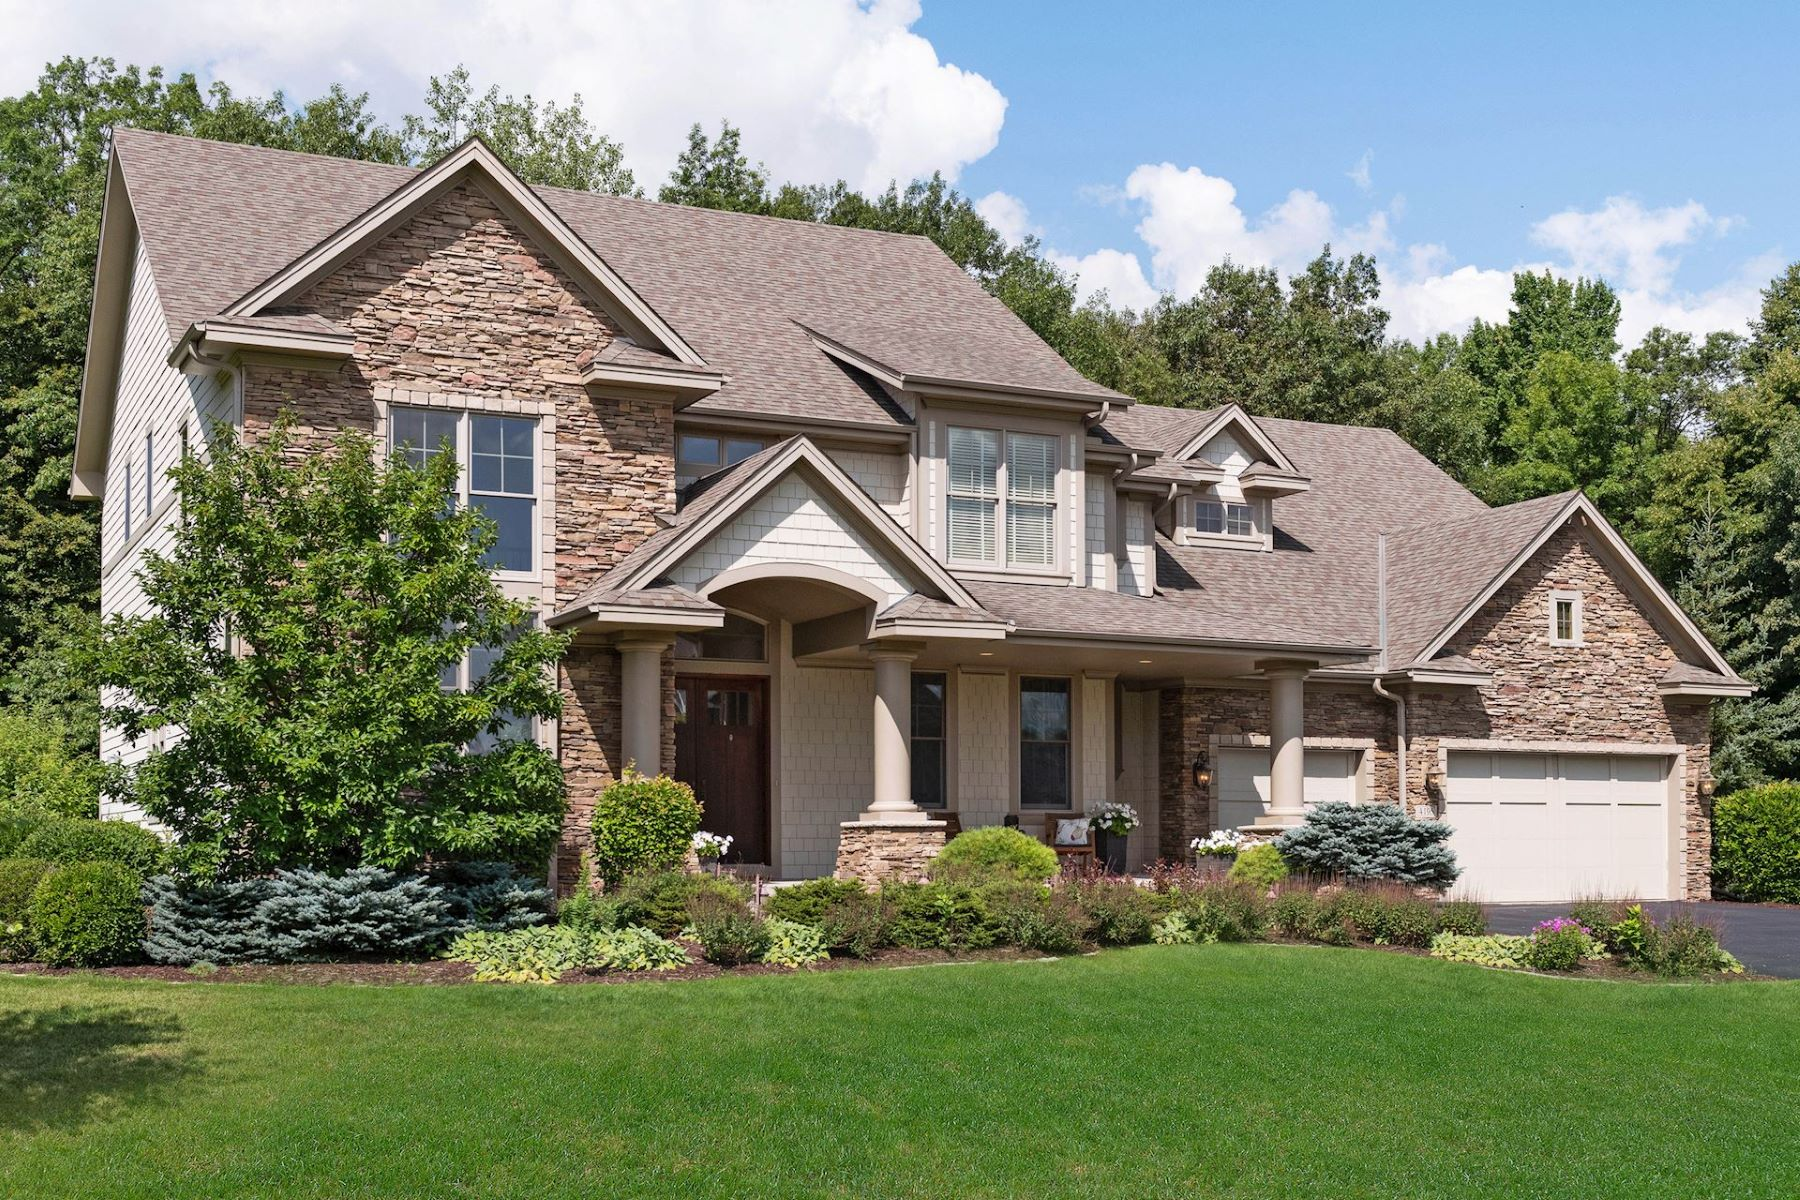 Single Family Homes for Sale at Exquisite Custom Built Home Set upon a Picturesque Private Medina Lot 4195 Wild Meadows Drive Medina, Minnesota 55340 United States